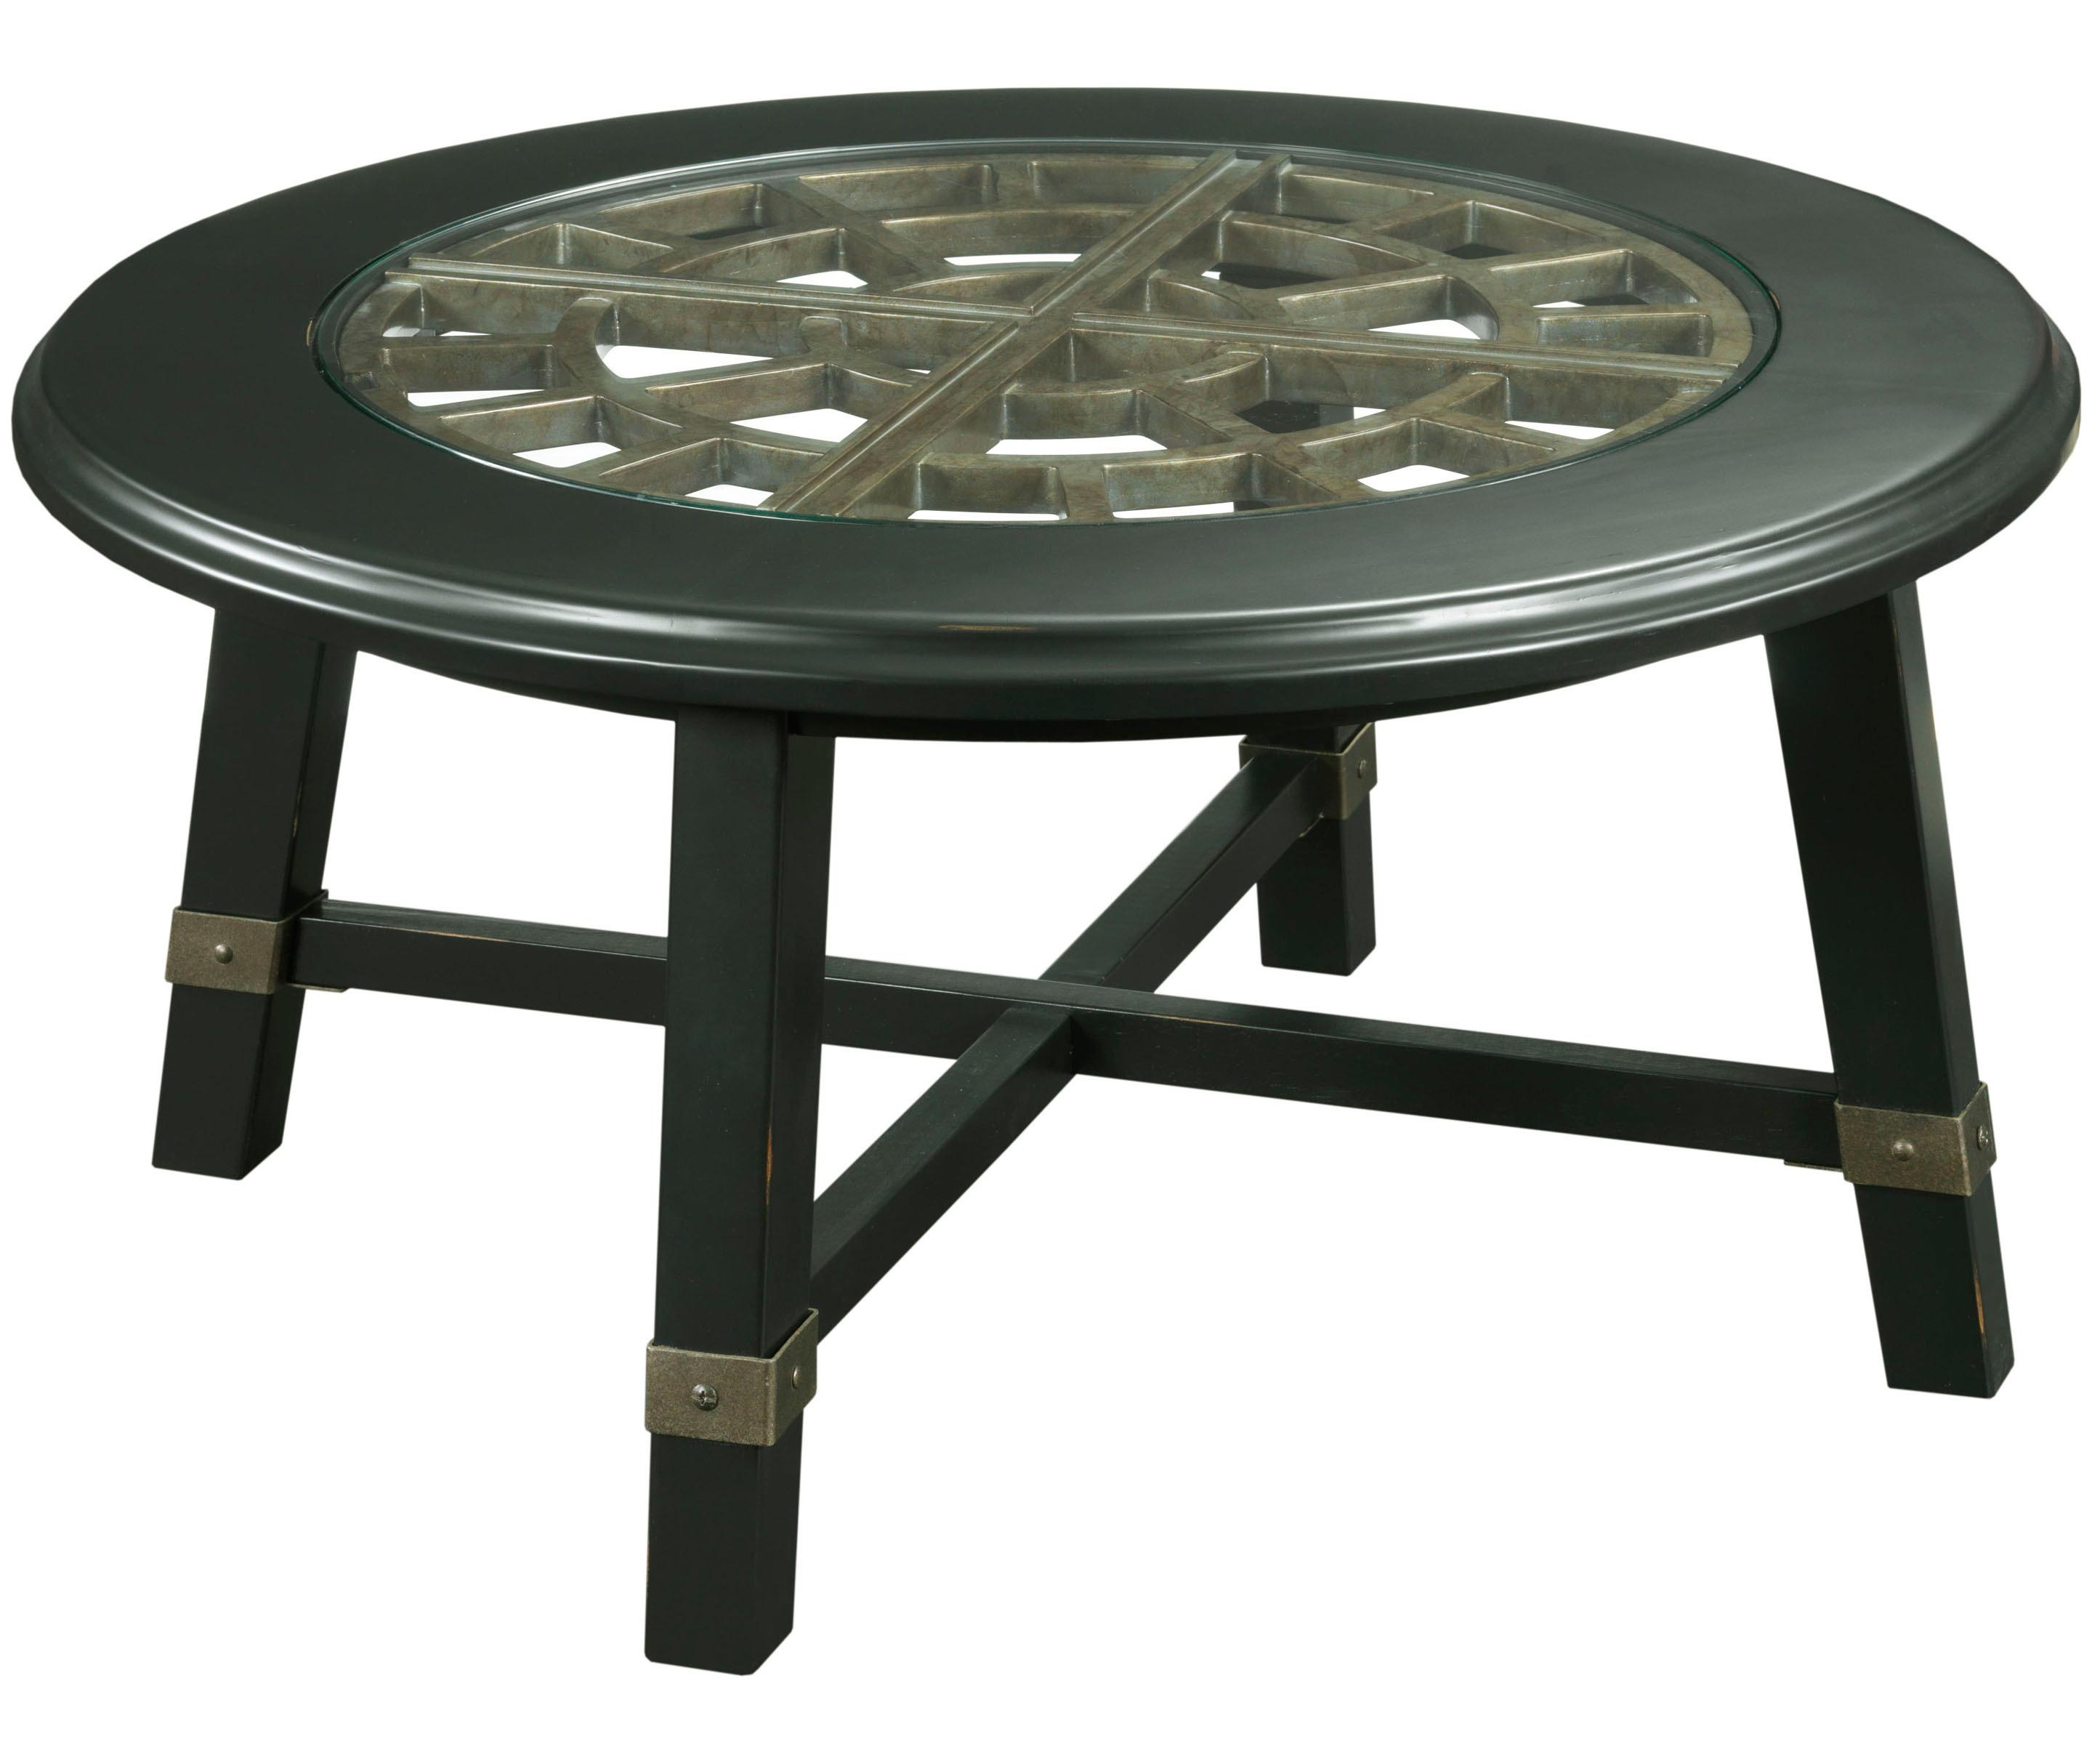 Broyhill Furniture New Vintage Round Grid Cocktail Table - Item Number: 4809-003